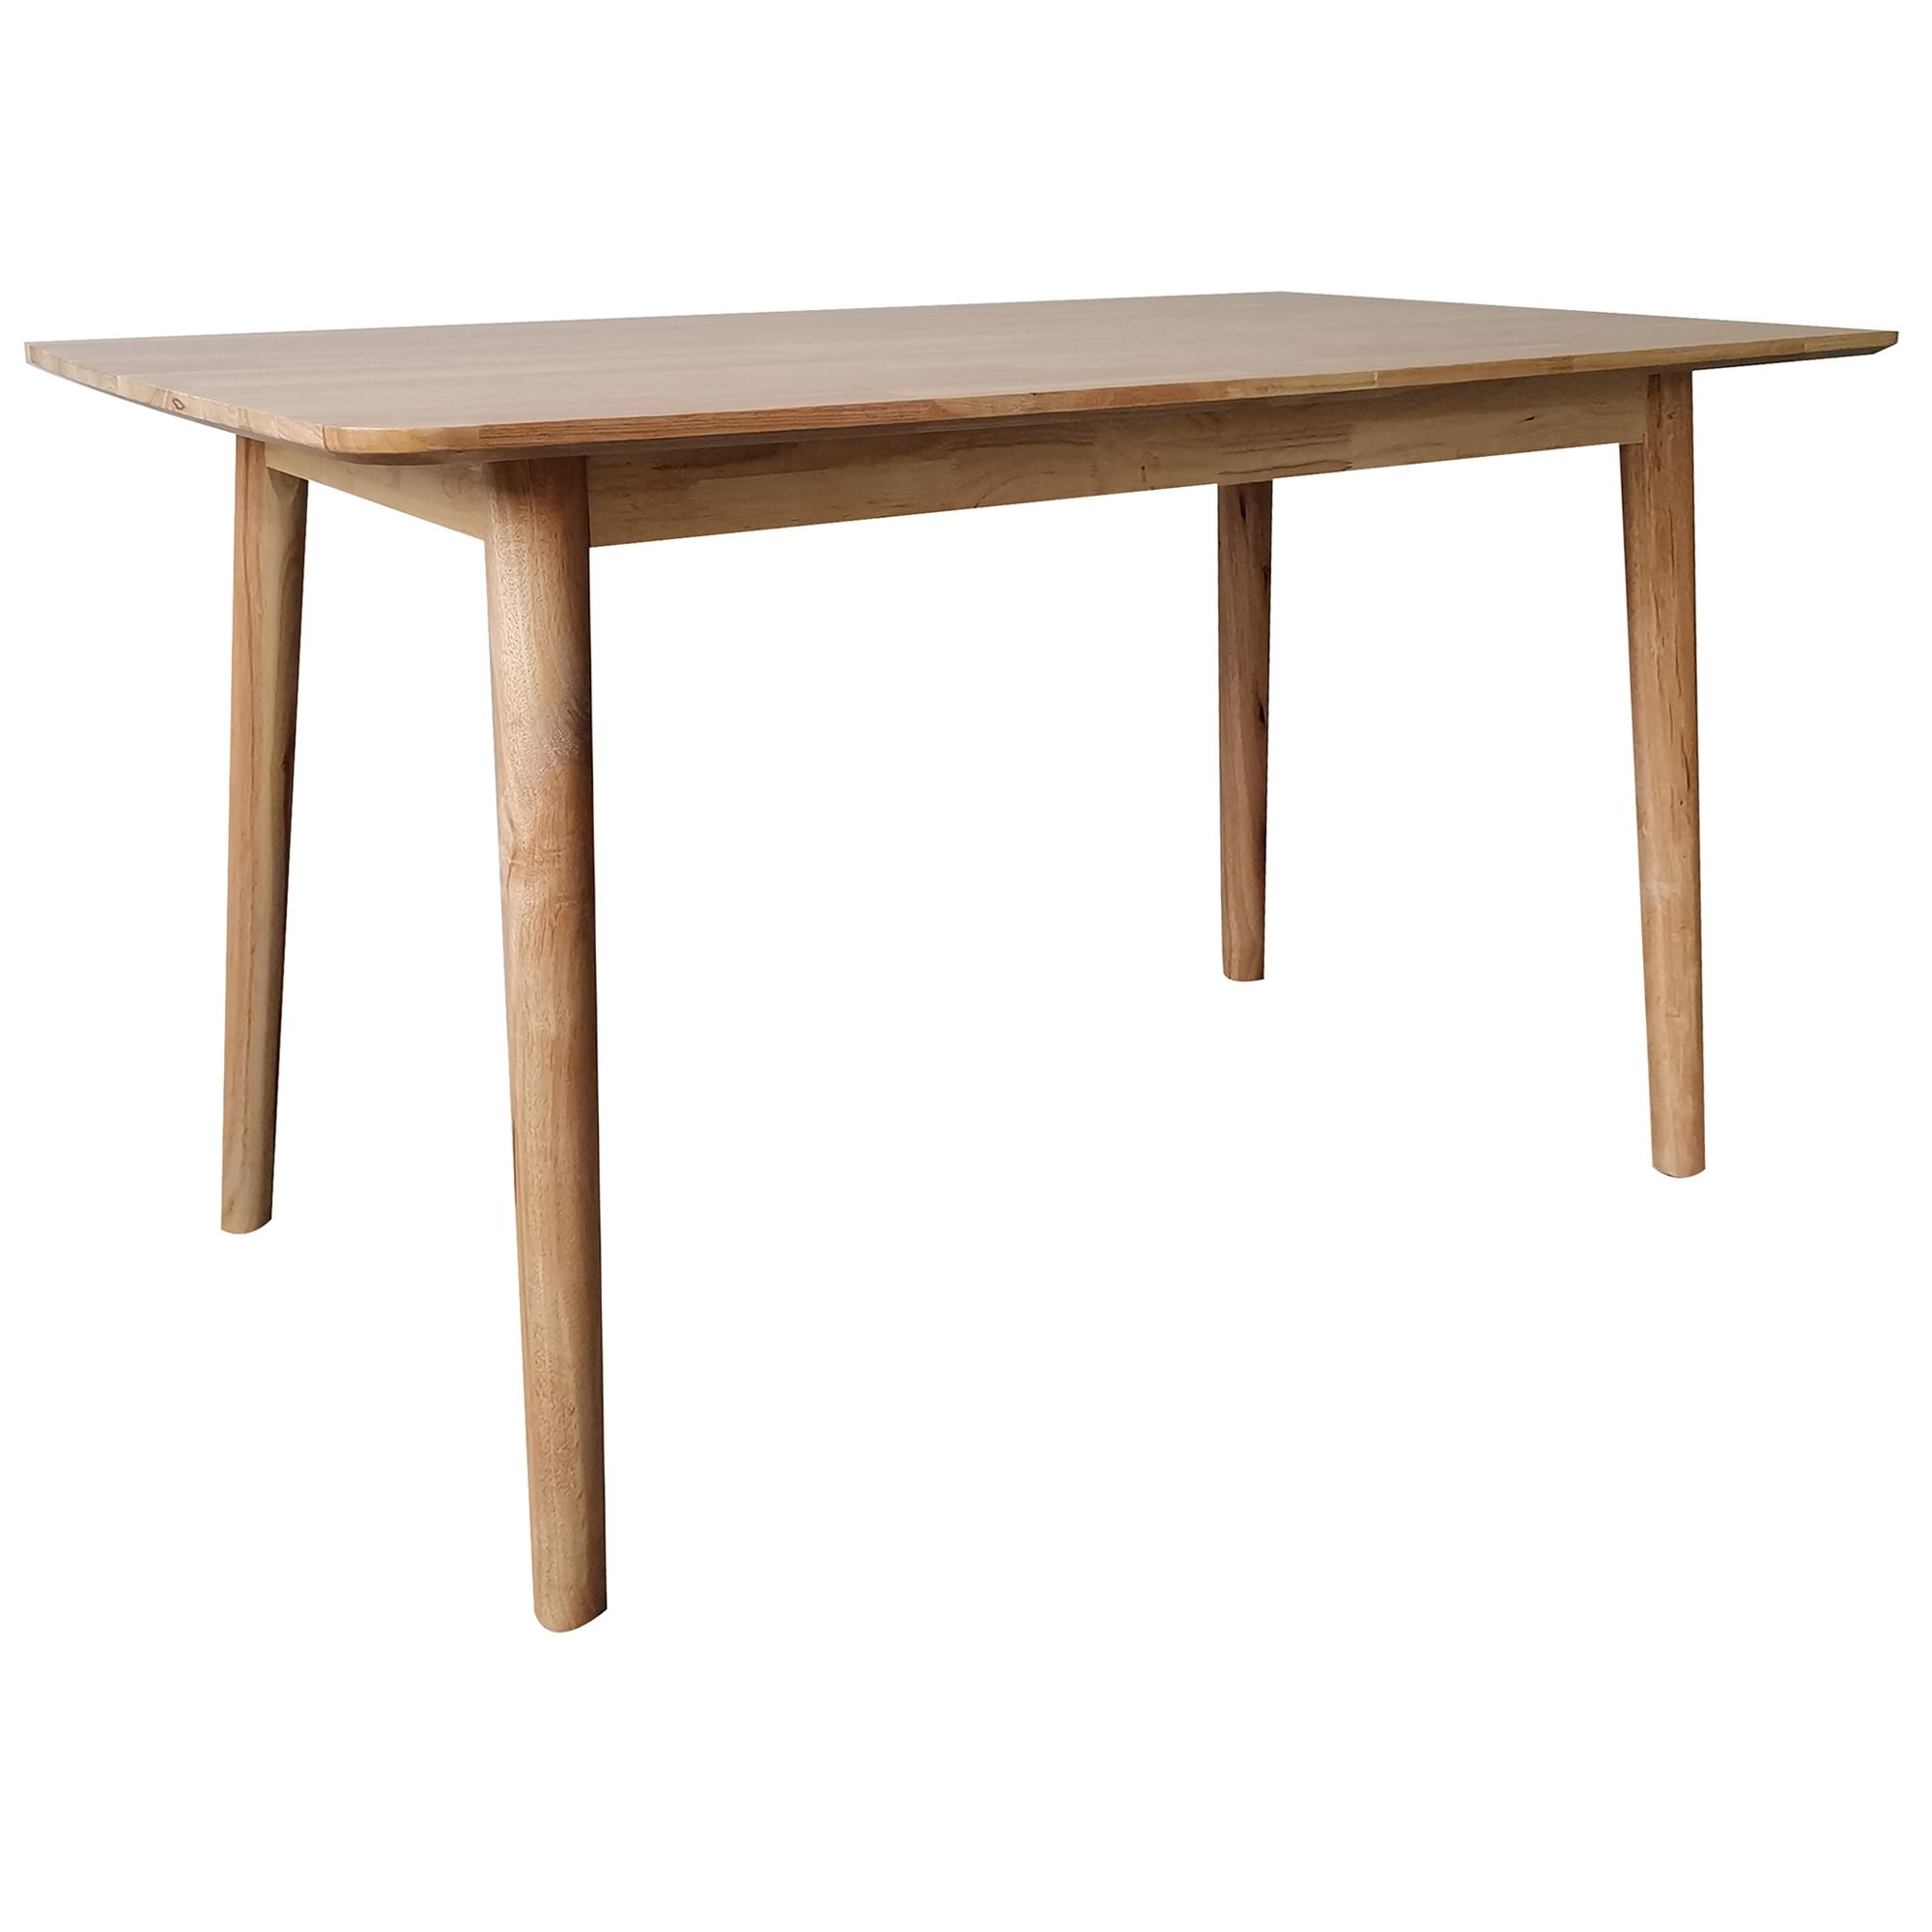 Tende Rubber Wood Dining Table, 160cm